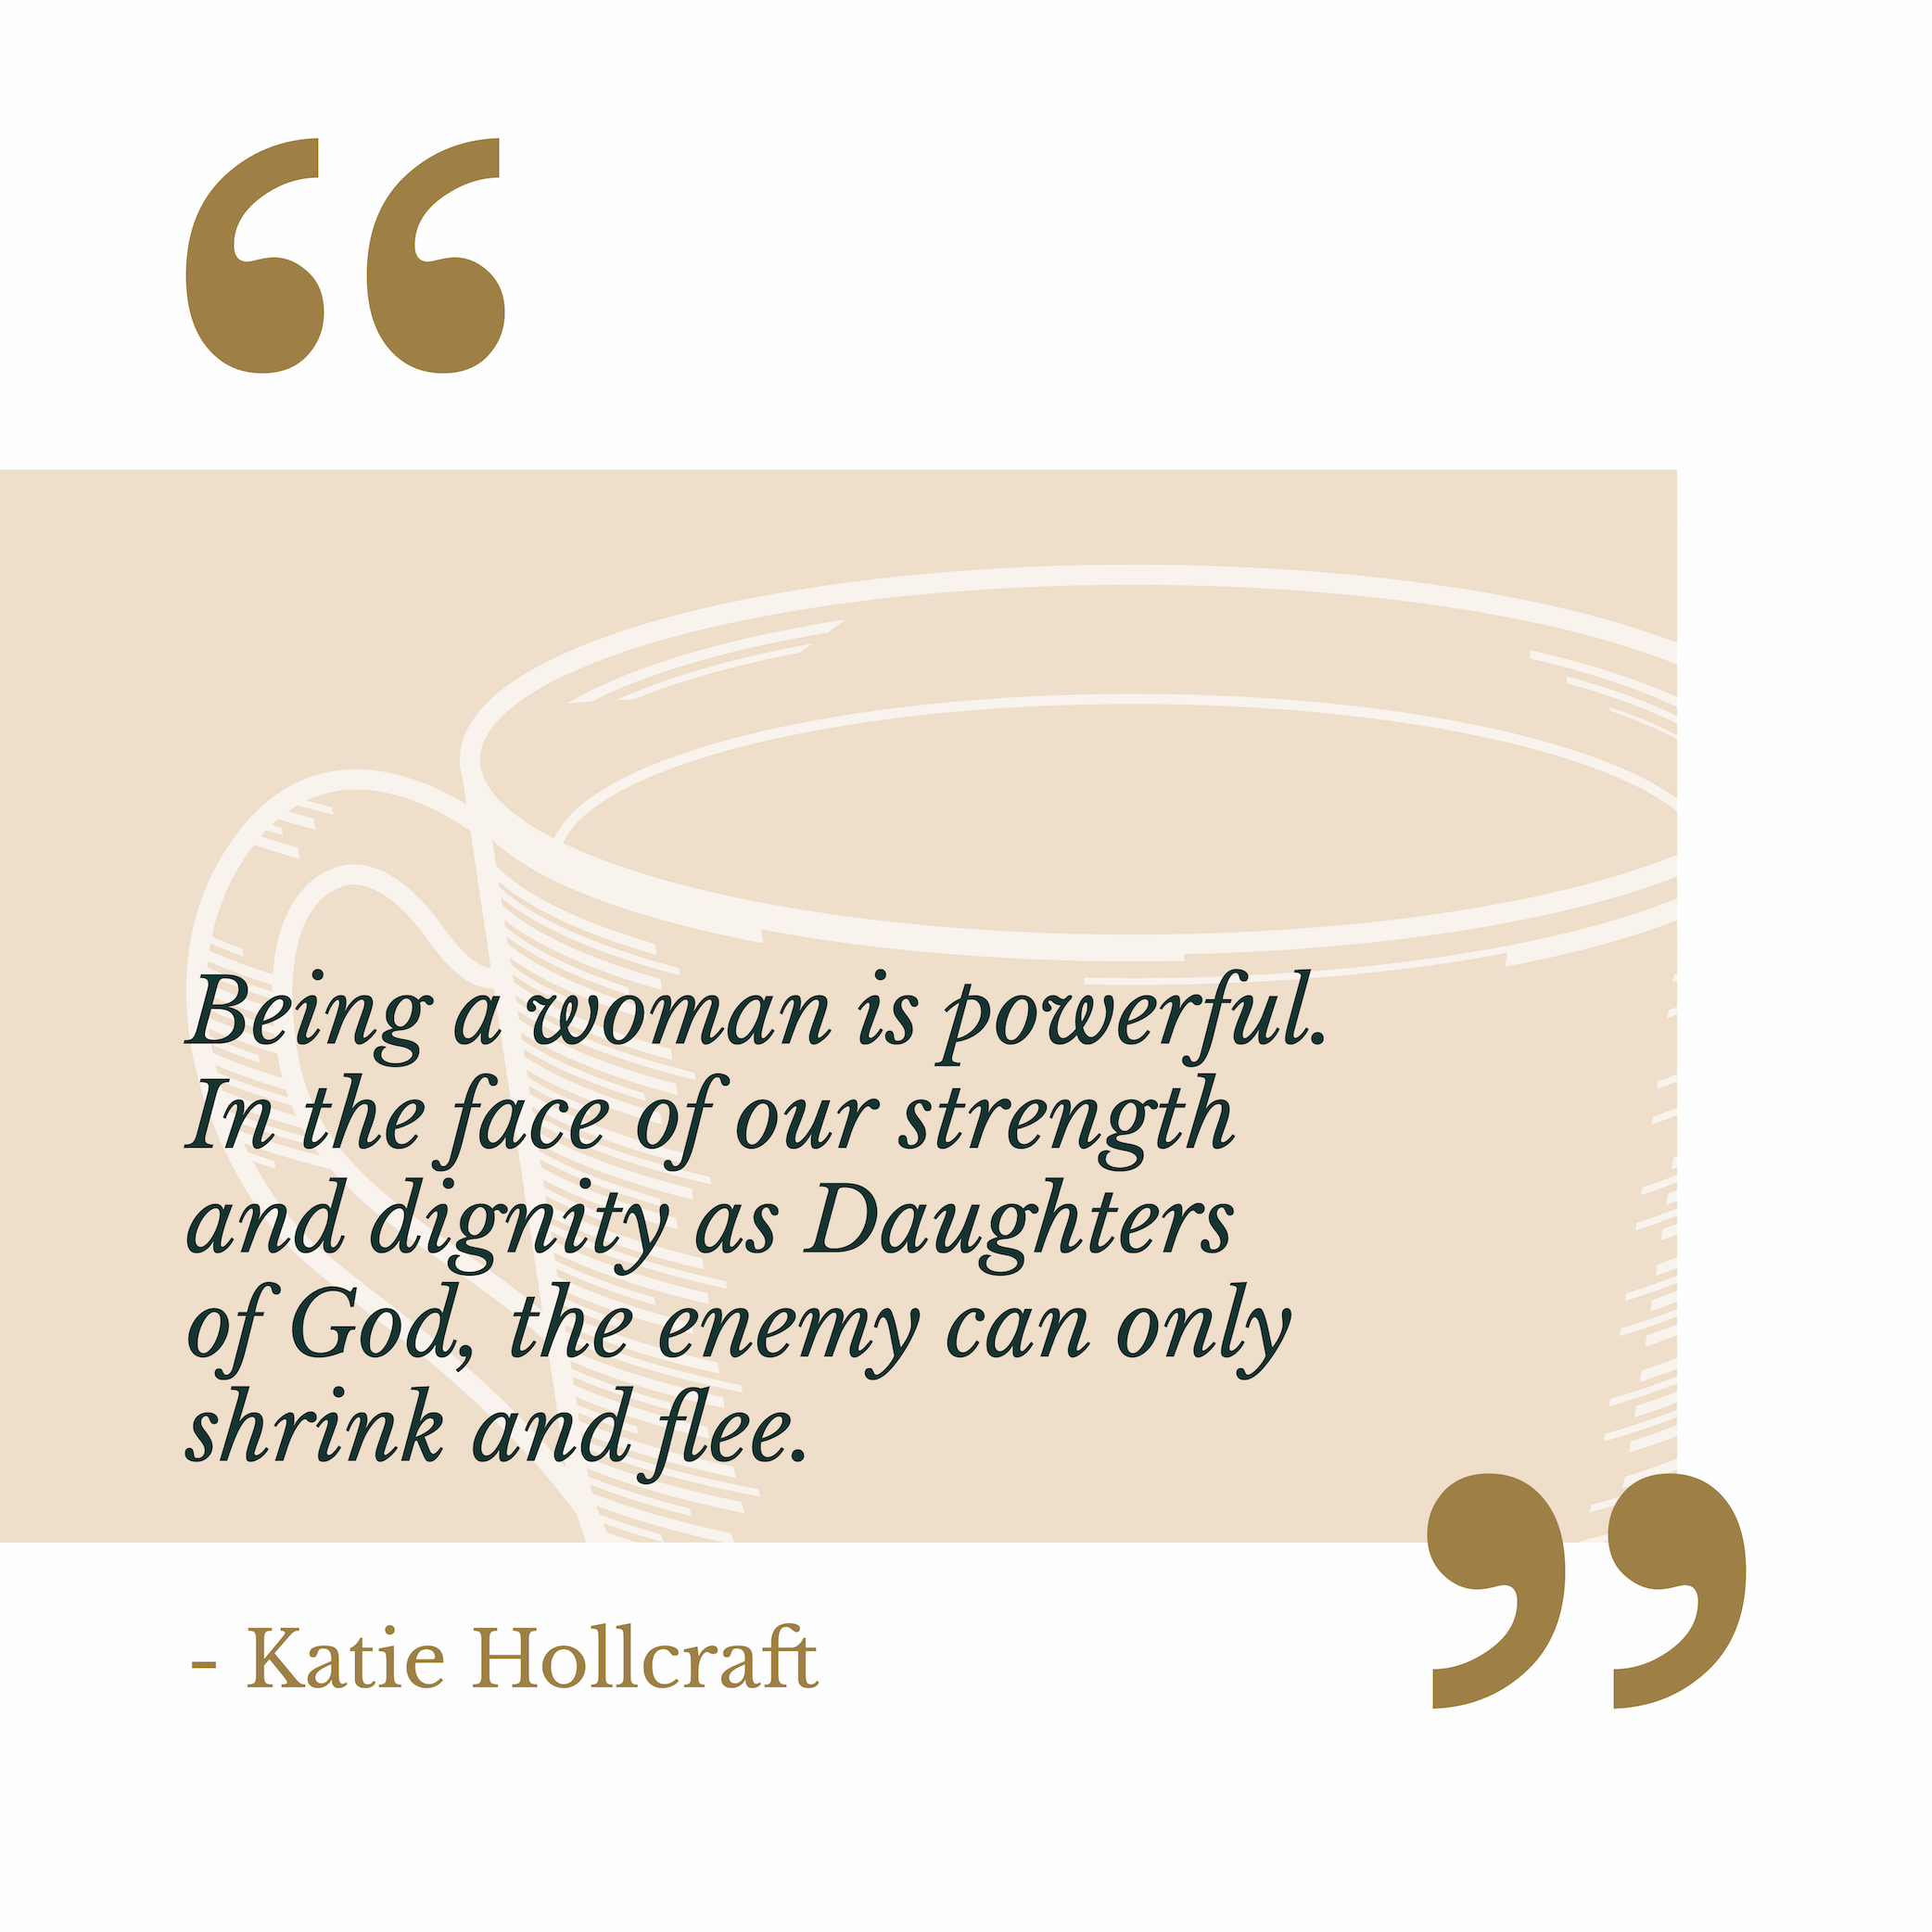 Katie Hollcraft The Catholic Woman Quote